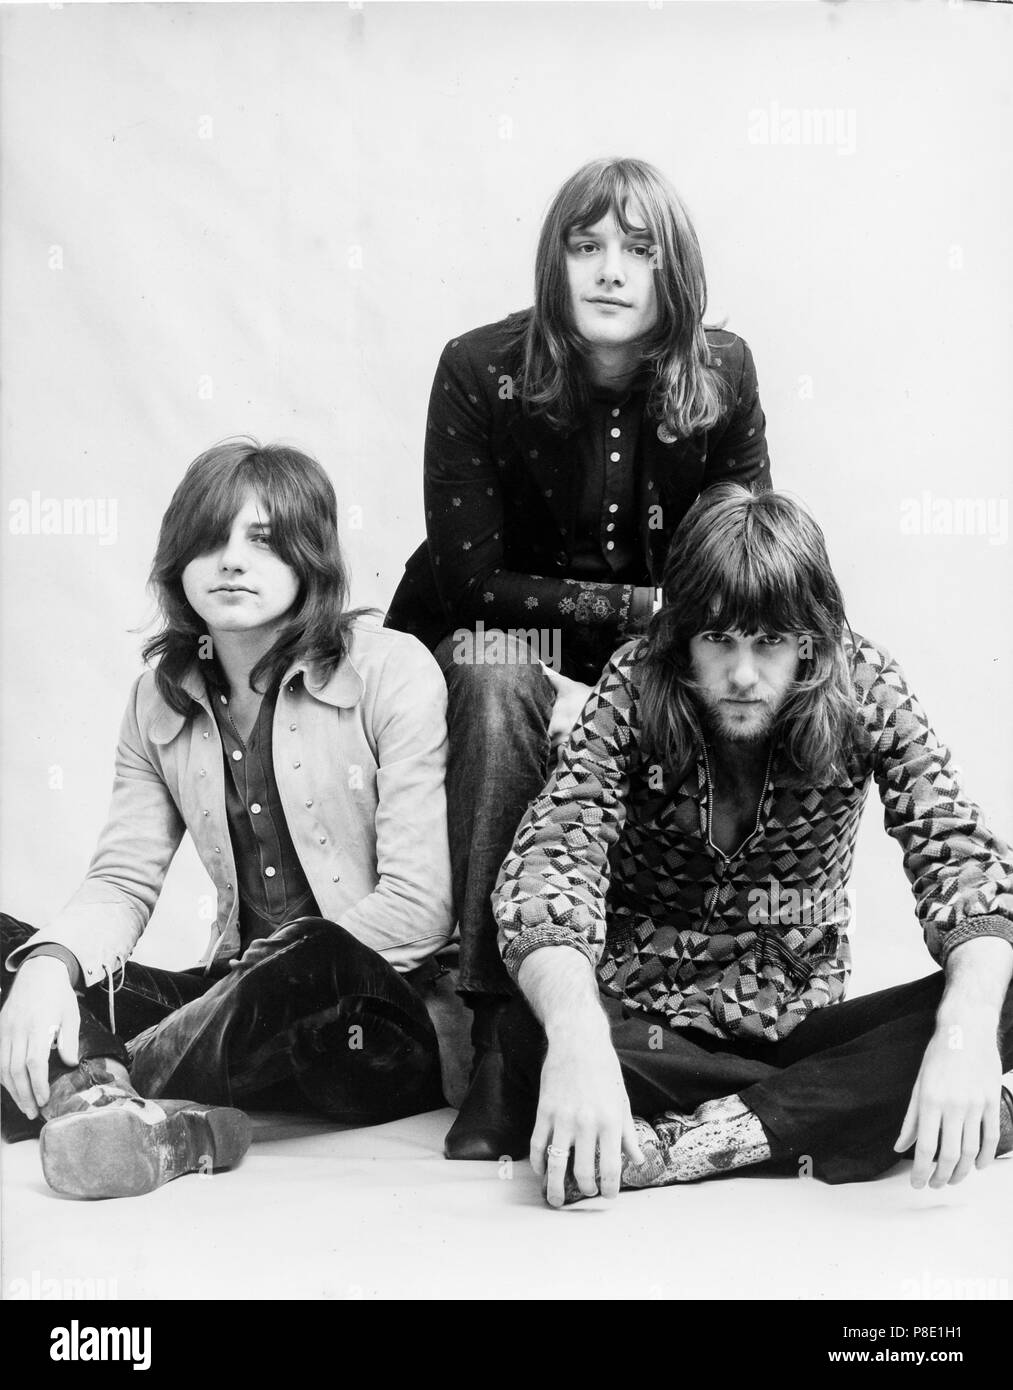 emerson lake & palmer, carl palmer, keith emerson, greg lake, 1972 Stock Photo